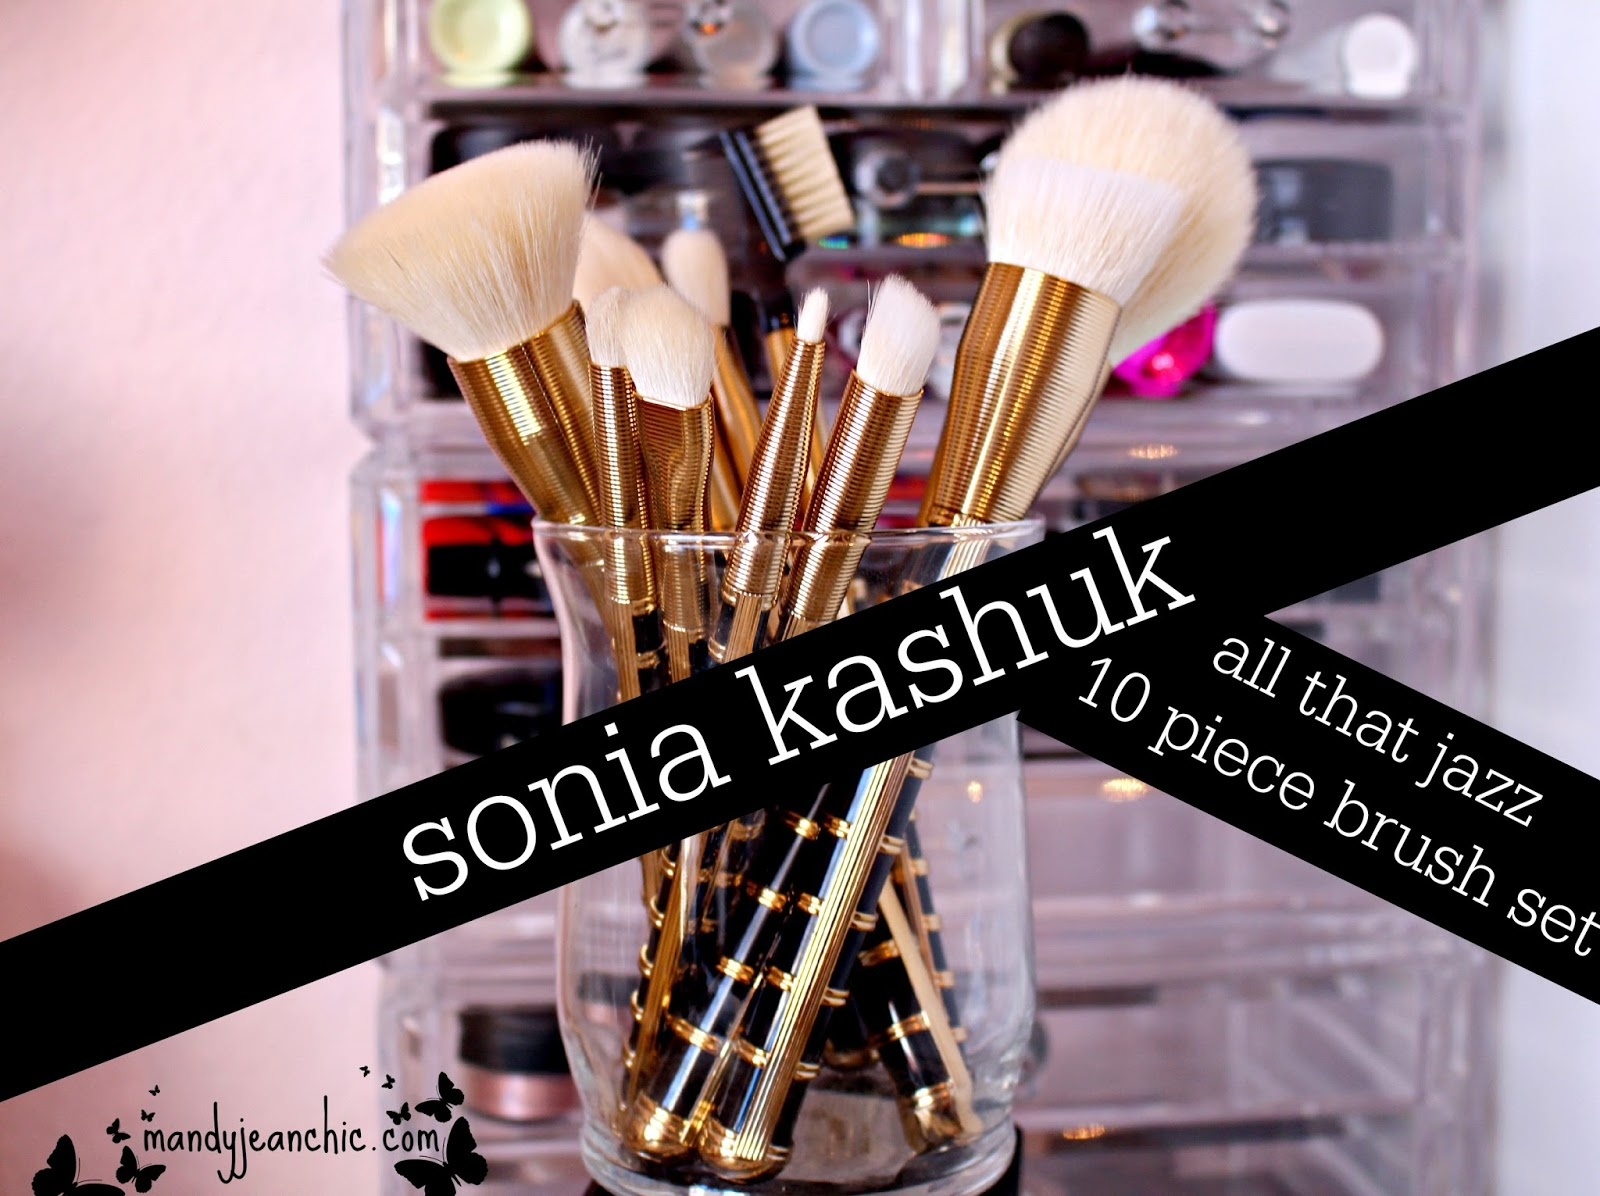 Sonia Kashuk All That Jazz Brush Set